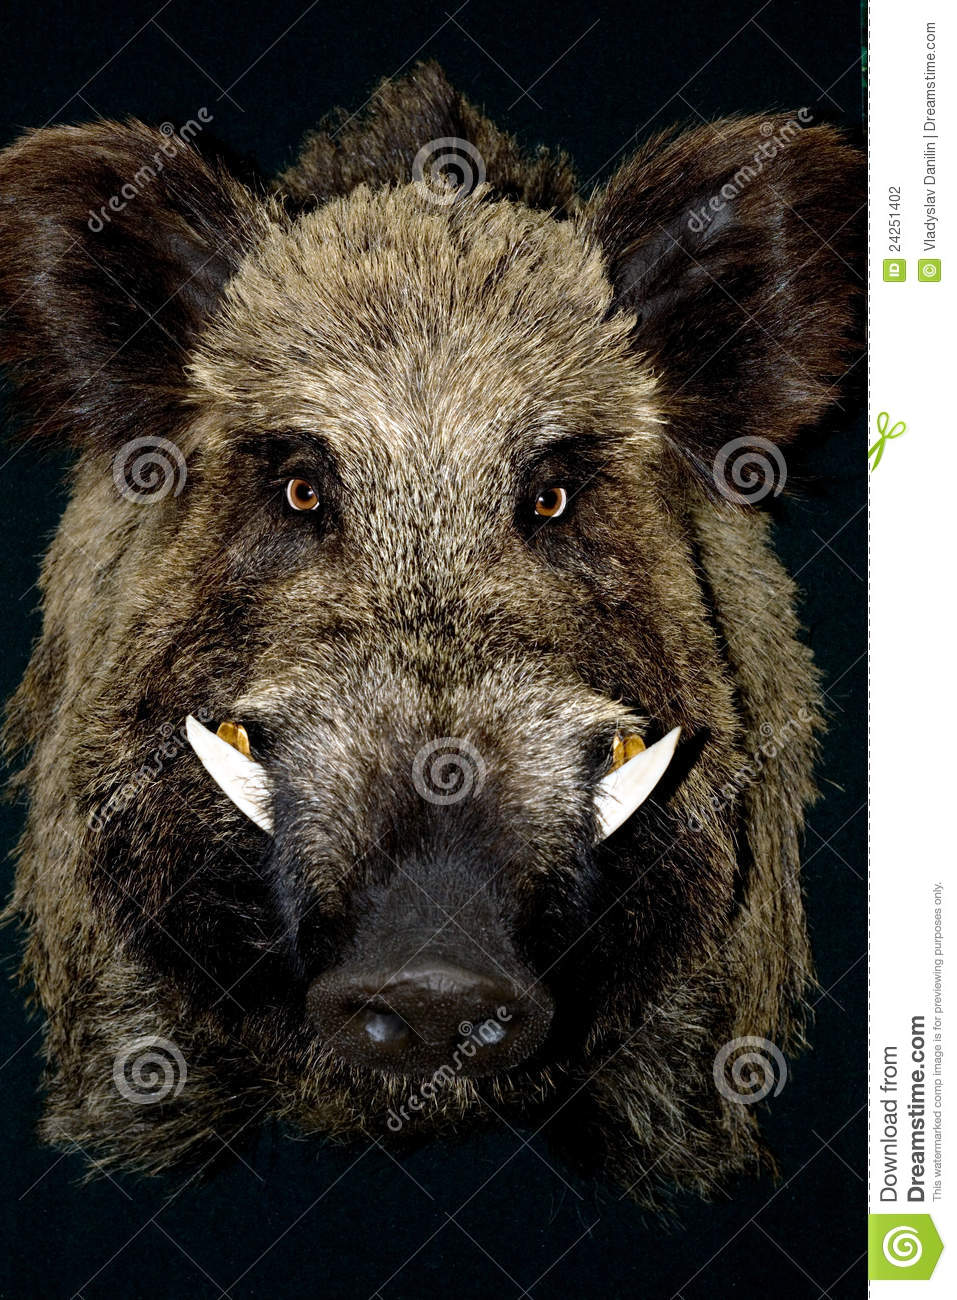 Wild Hog Wild Boar Stock Photo. Image Of Portrait, Bristle, Mammal